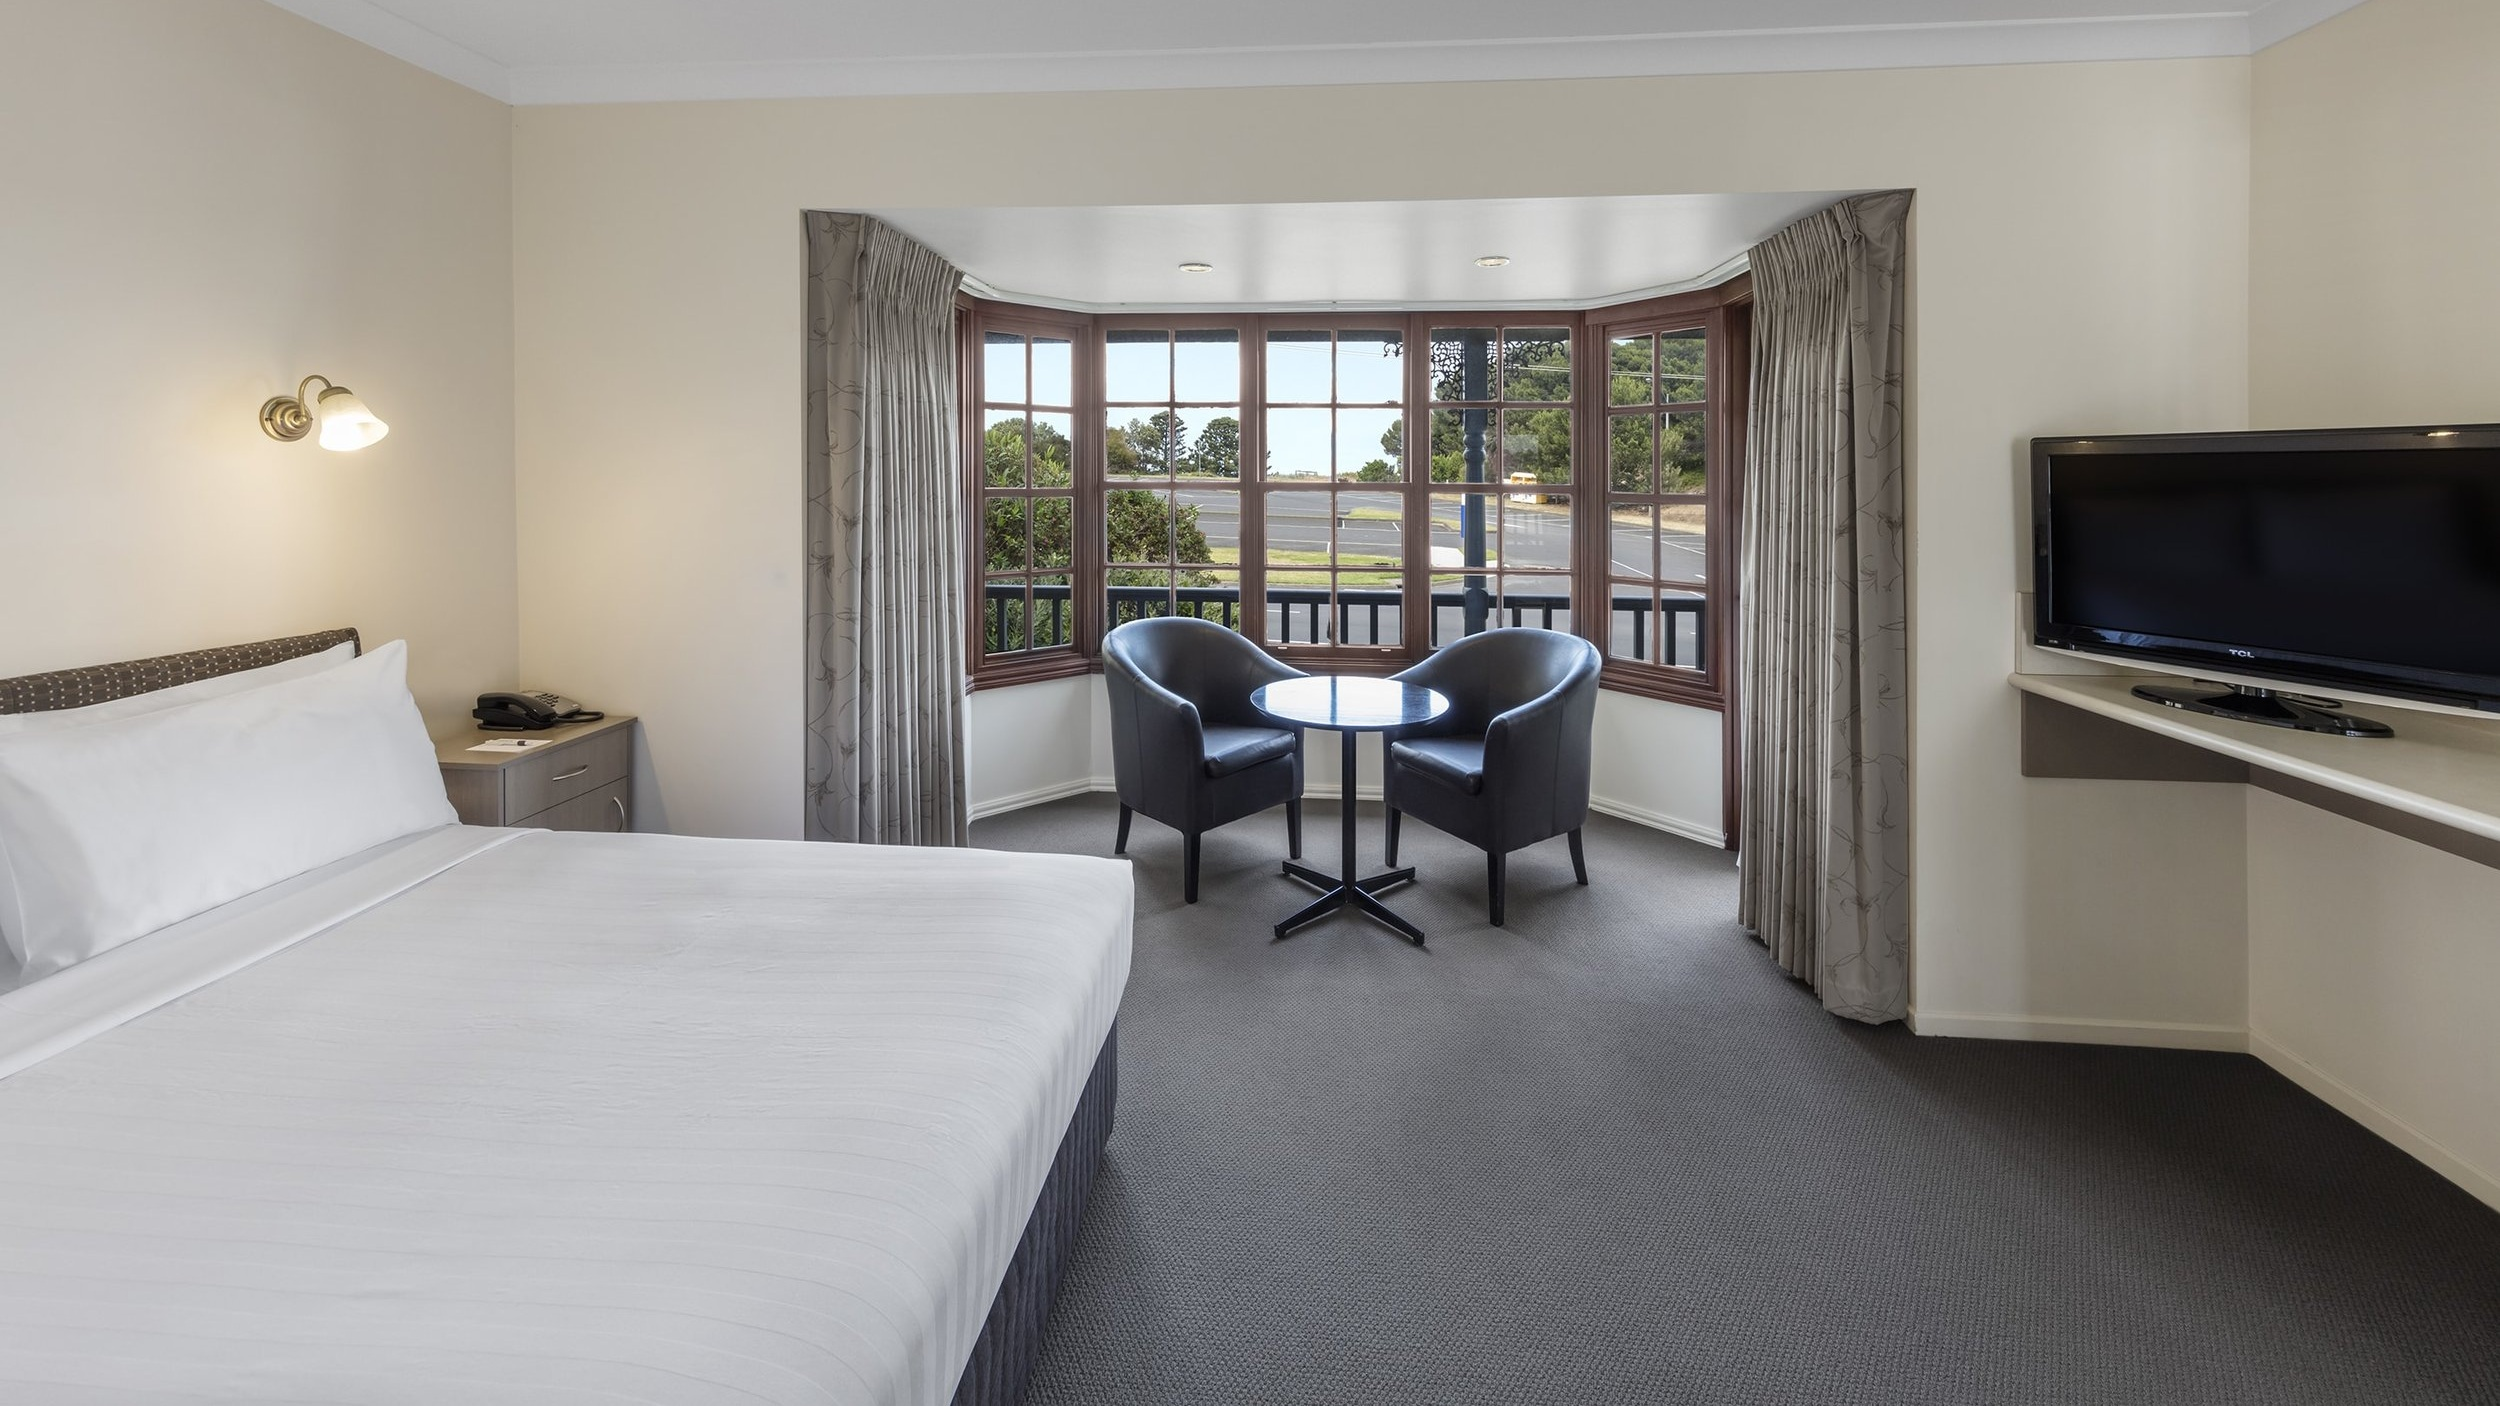 Premium Queen - Beautifully renovated with 1 x queen bed, leather tub chairs and a private ensuite.⨠ View Room Details